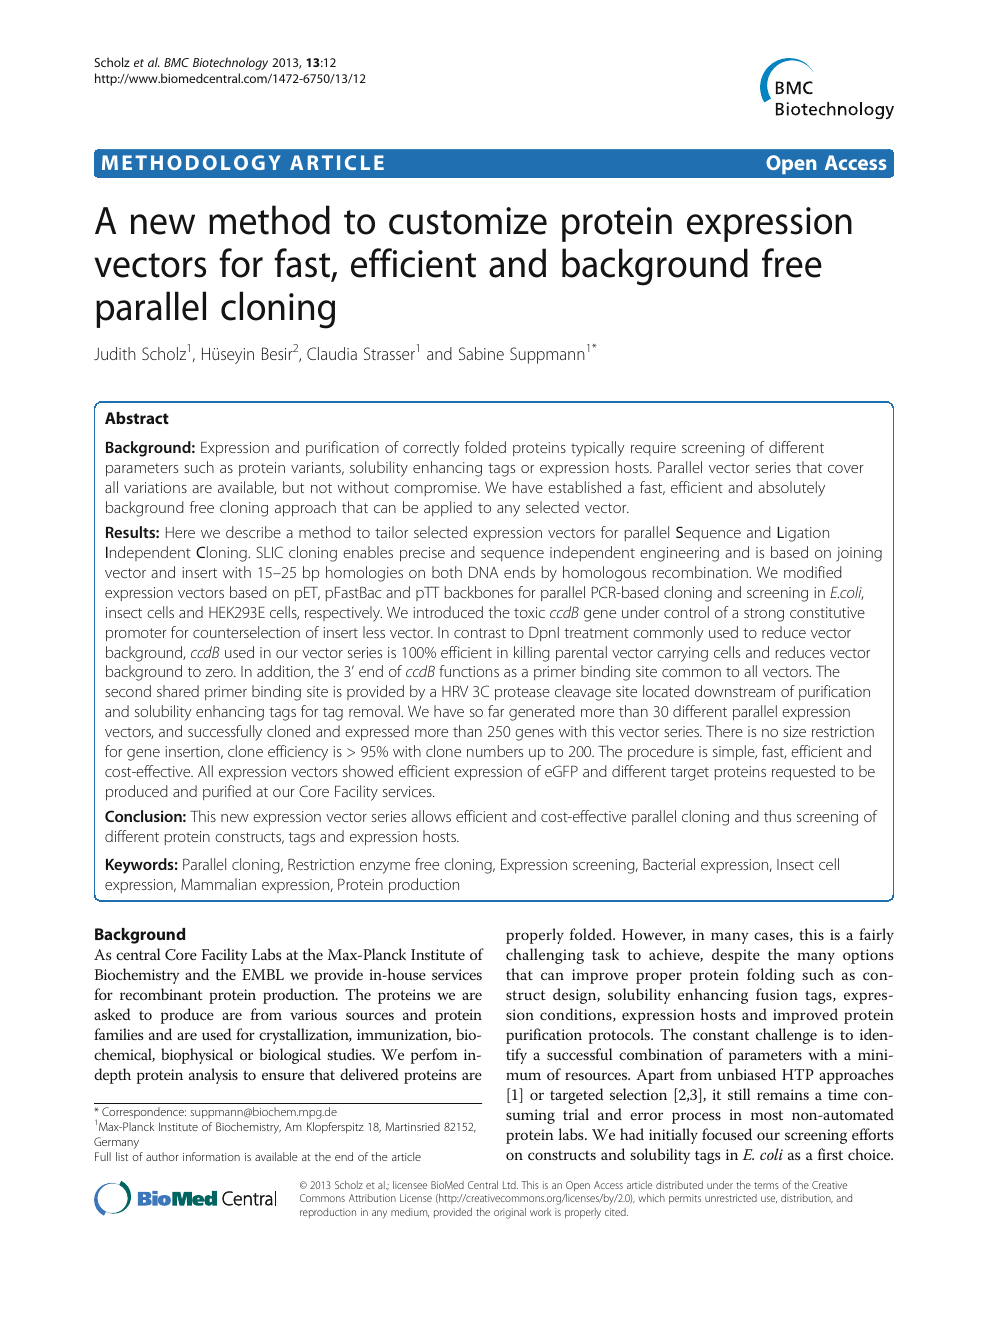 A new method to customize protein expression vectors for